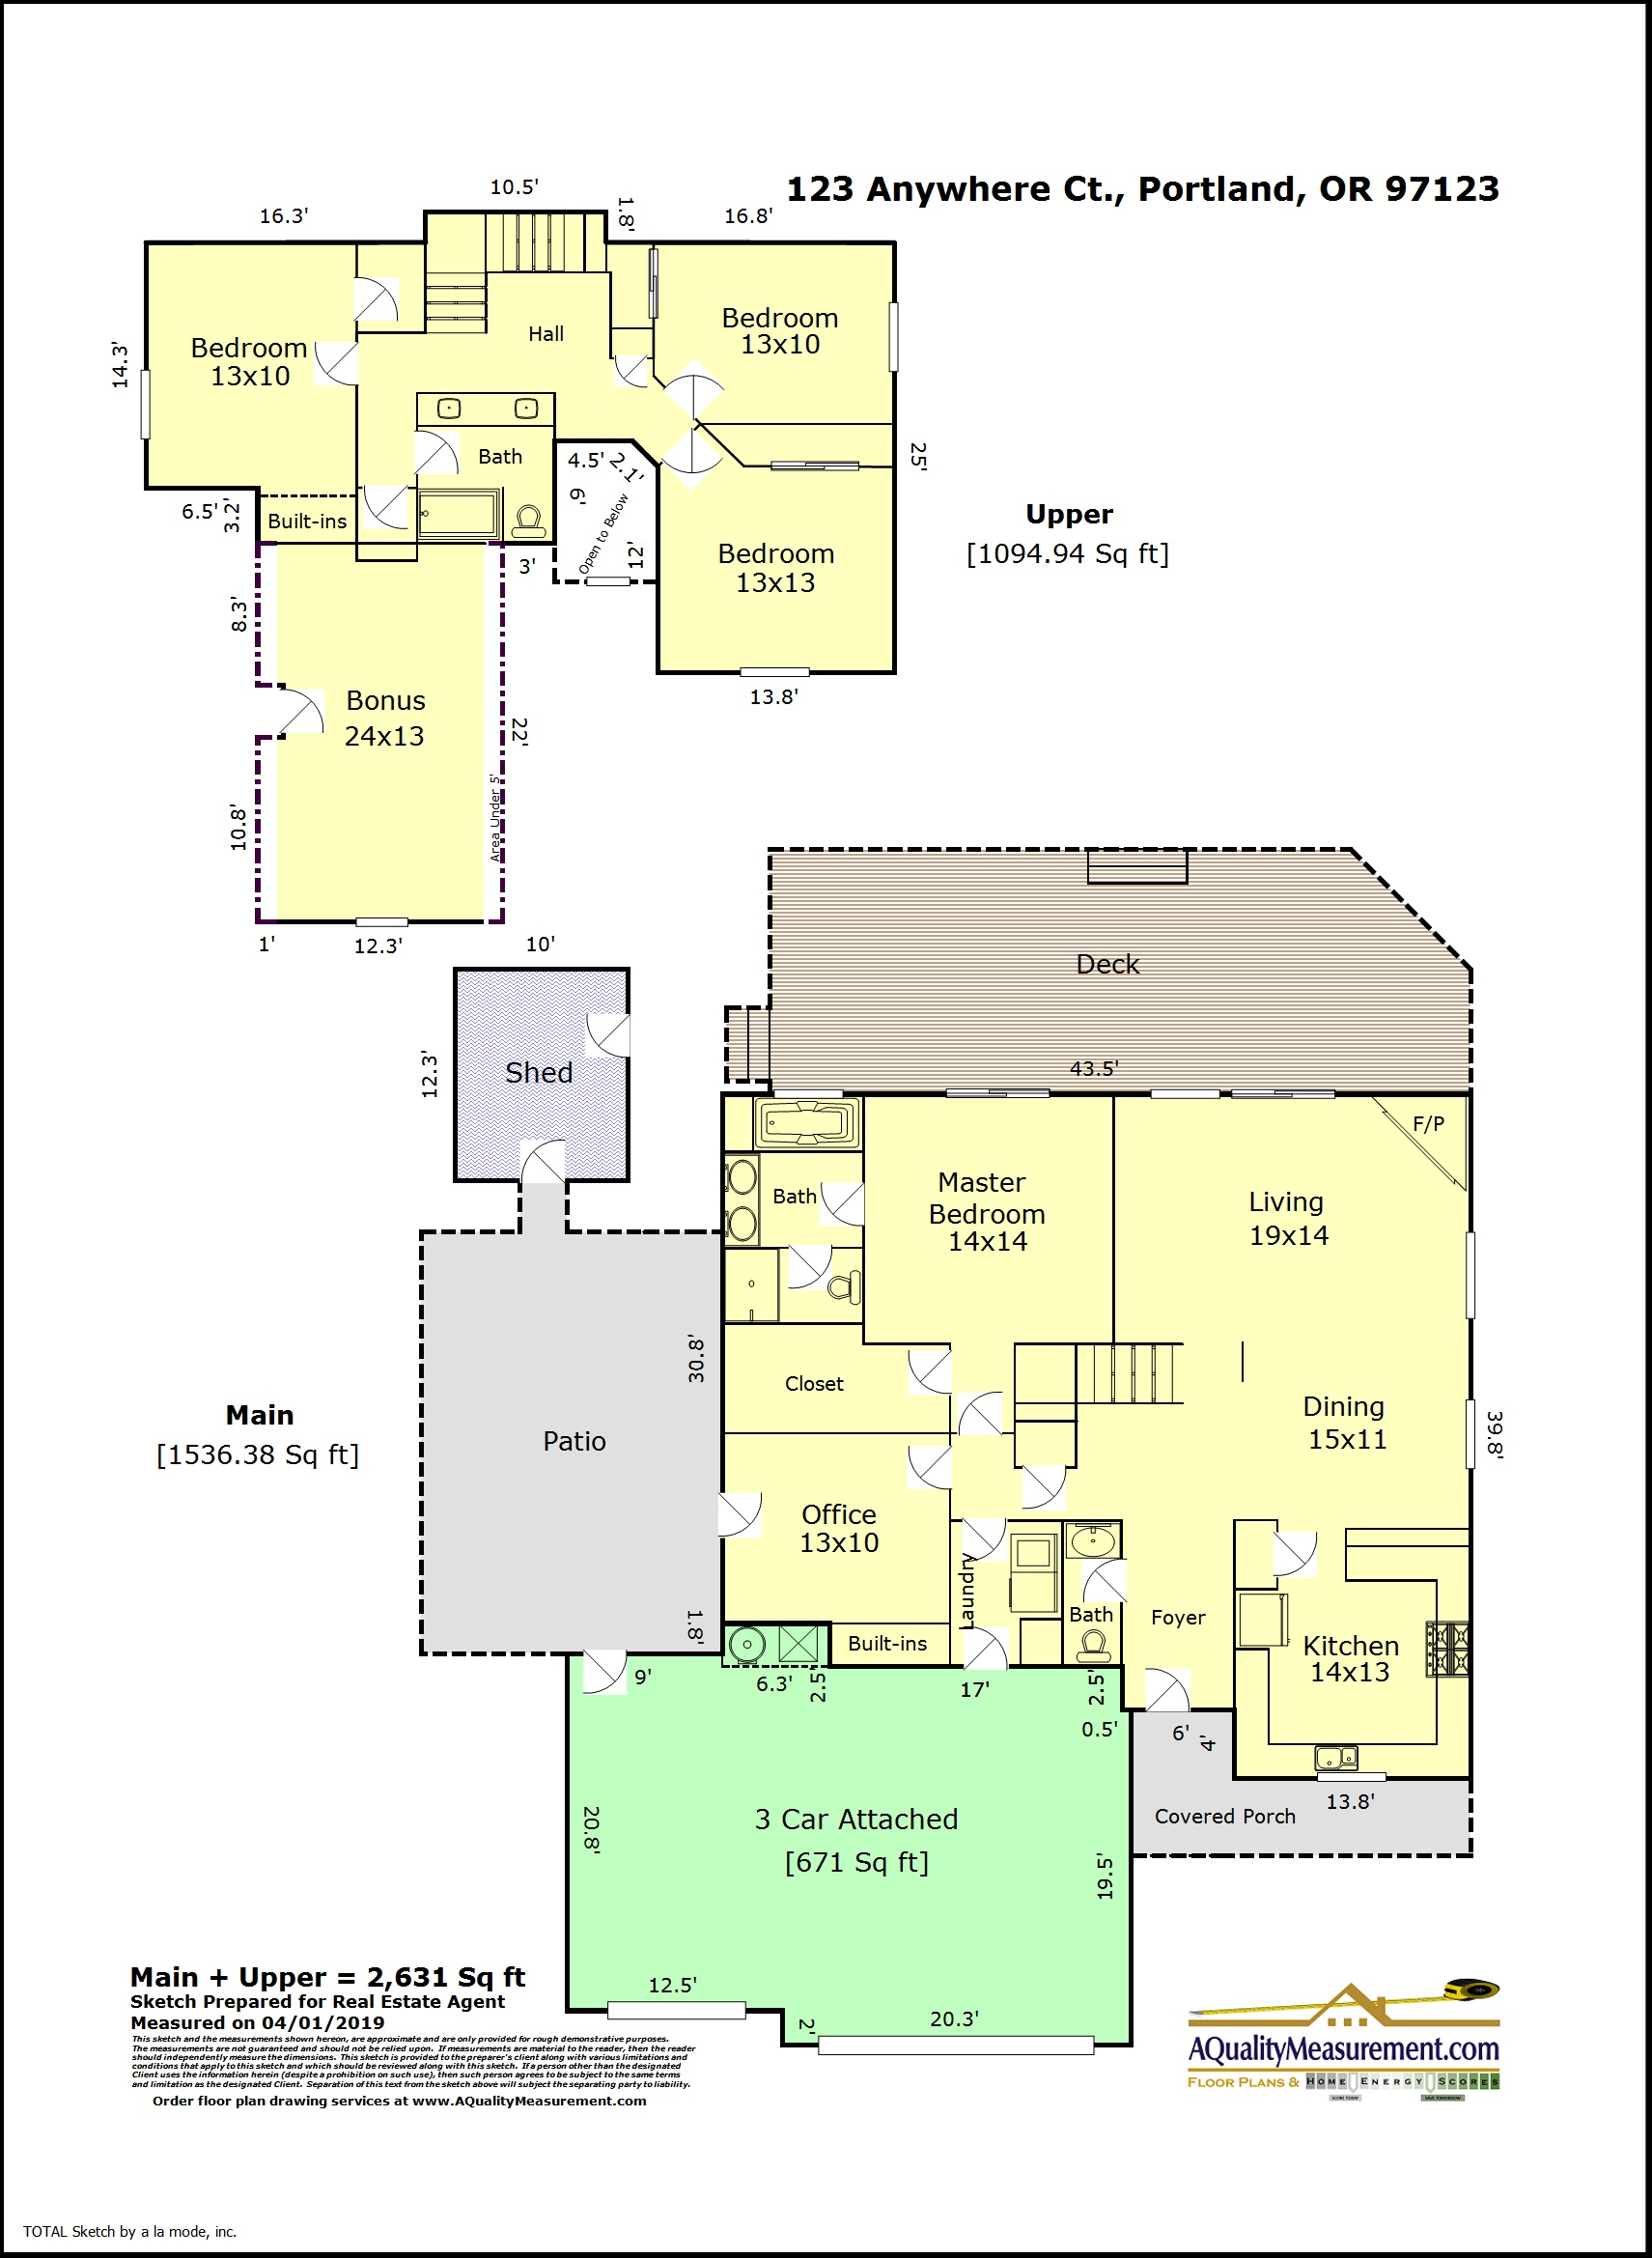 This floor plan shows the interior walls, door, counters, and windows.